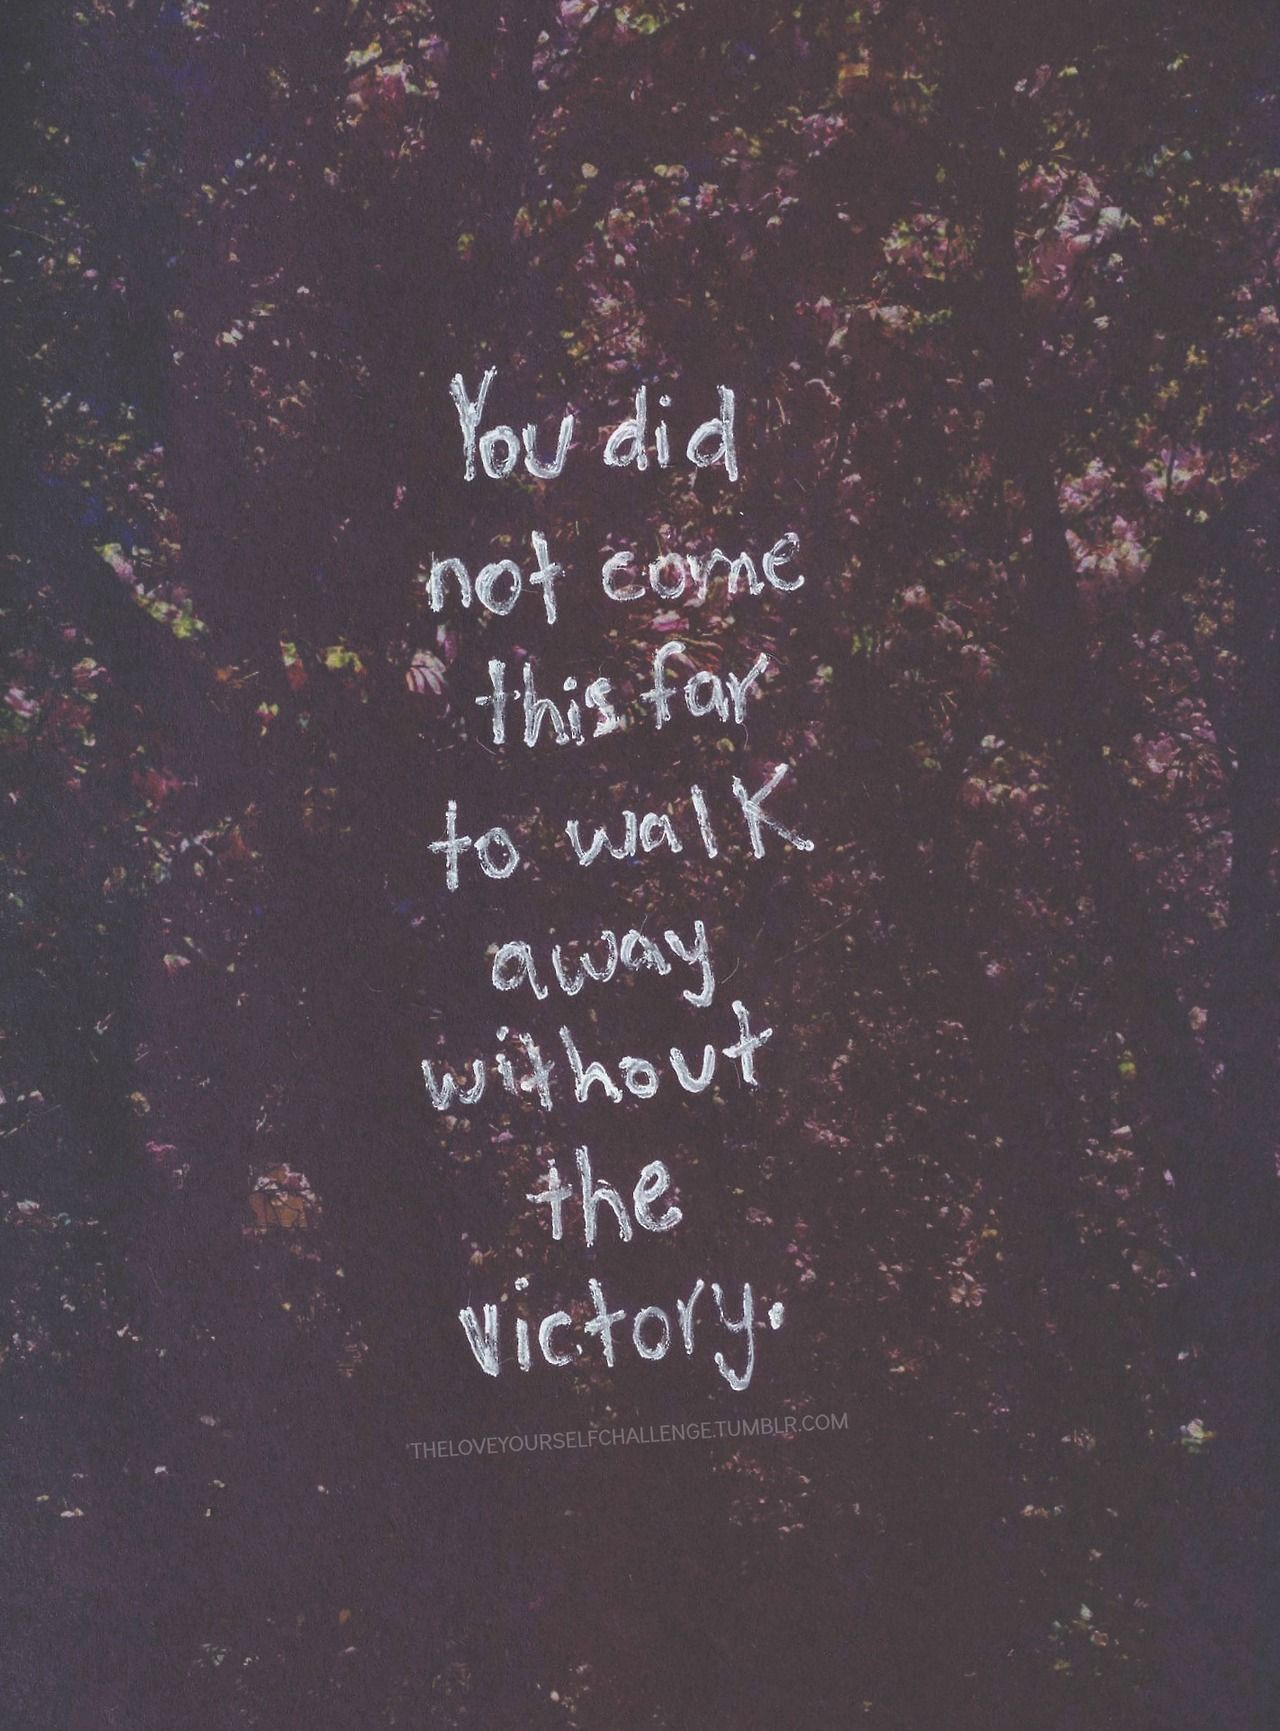 The Victory Be Victorious Words Of Wisdom Pinterest Frases